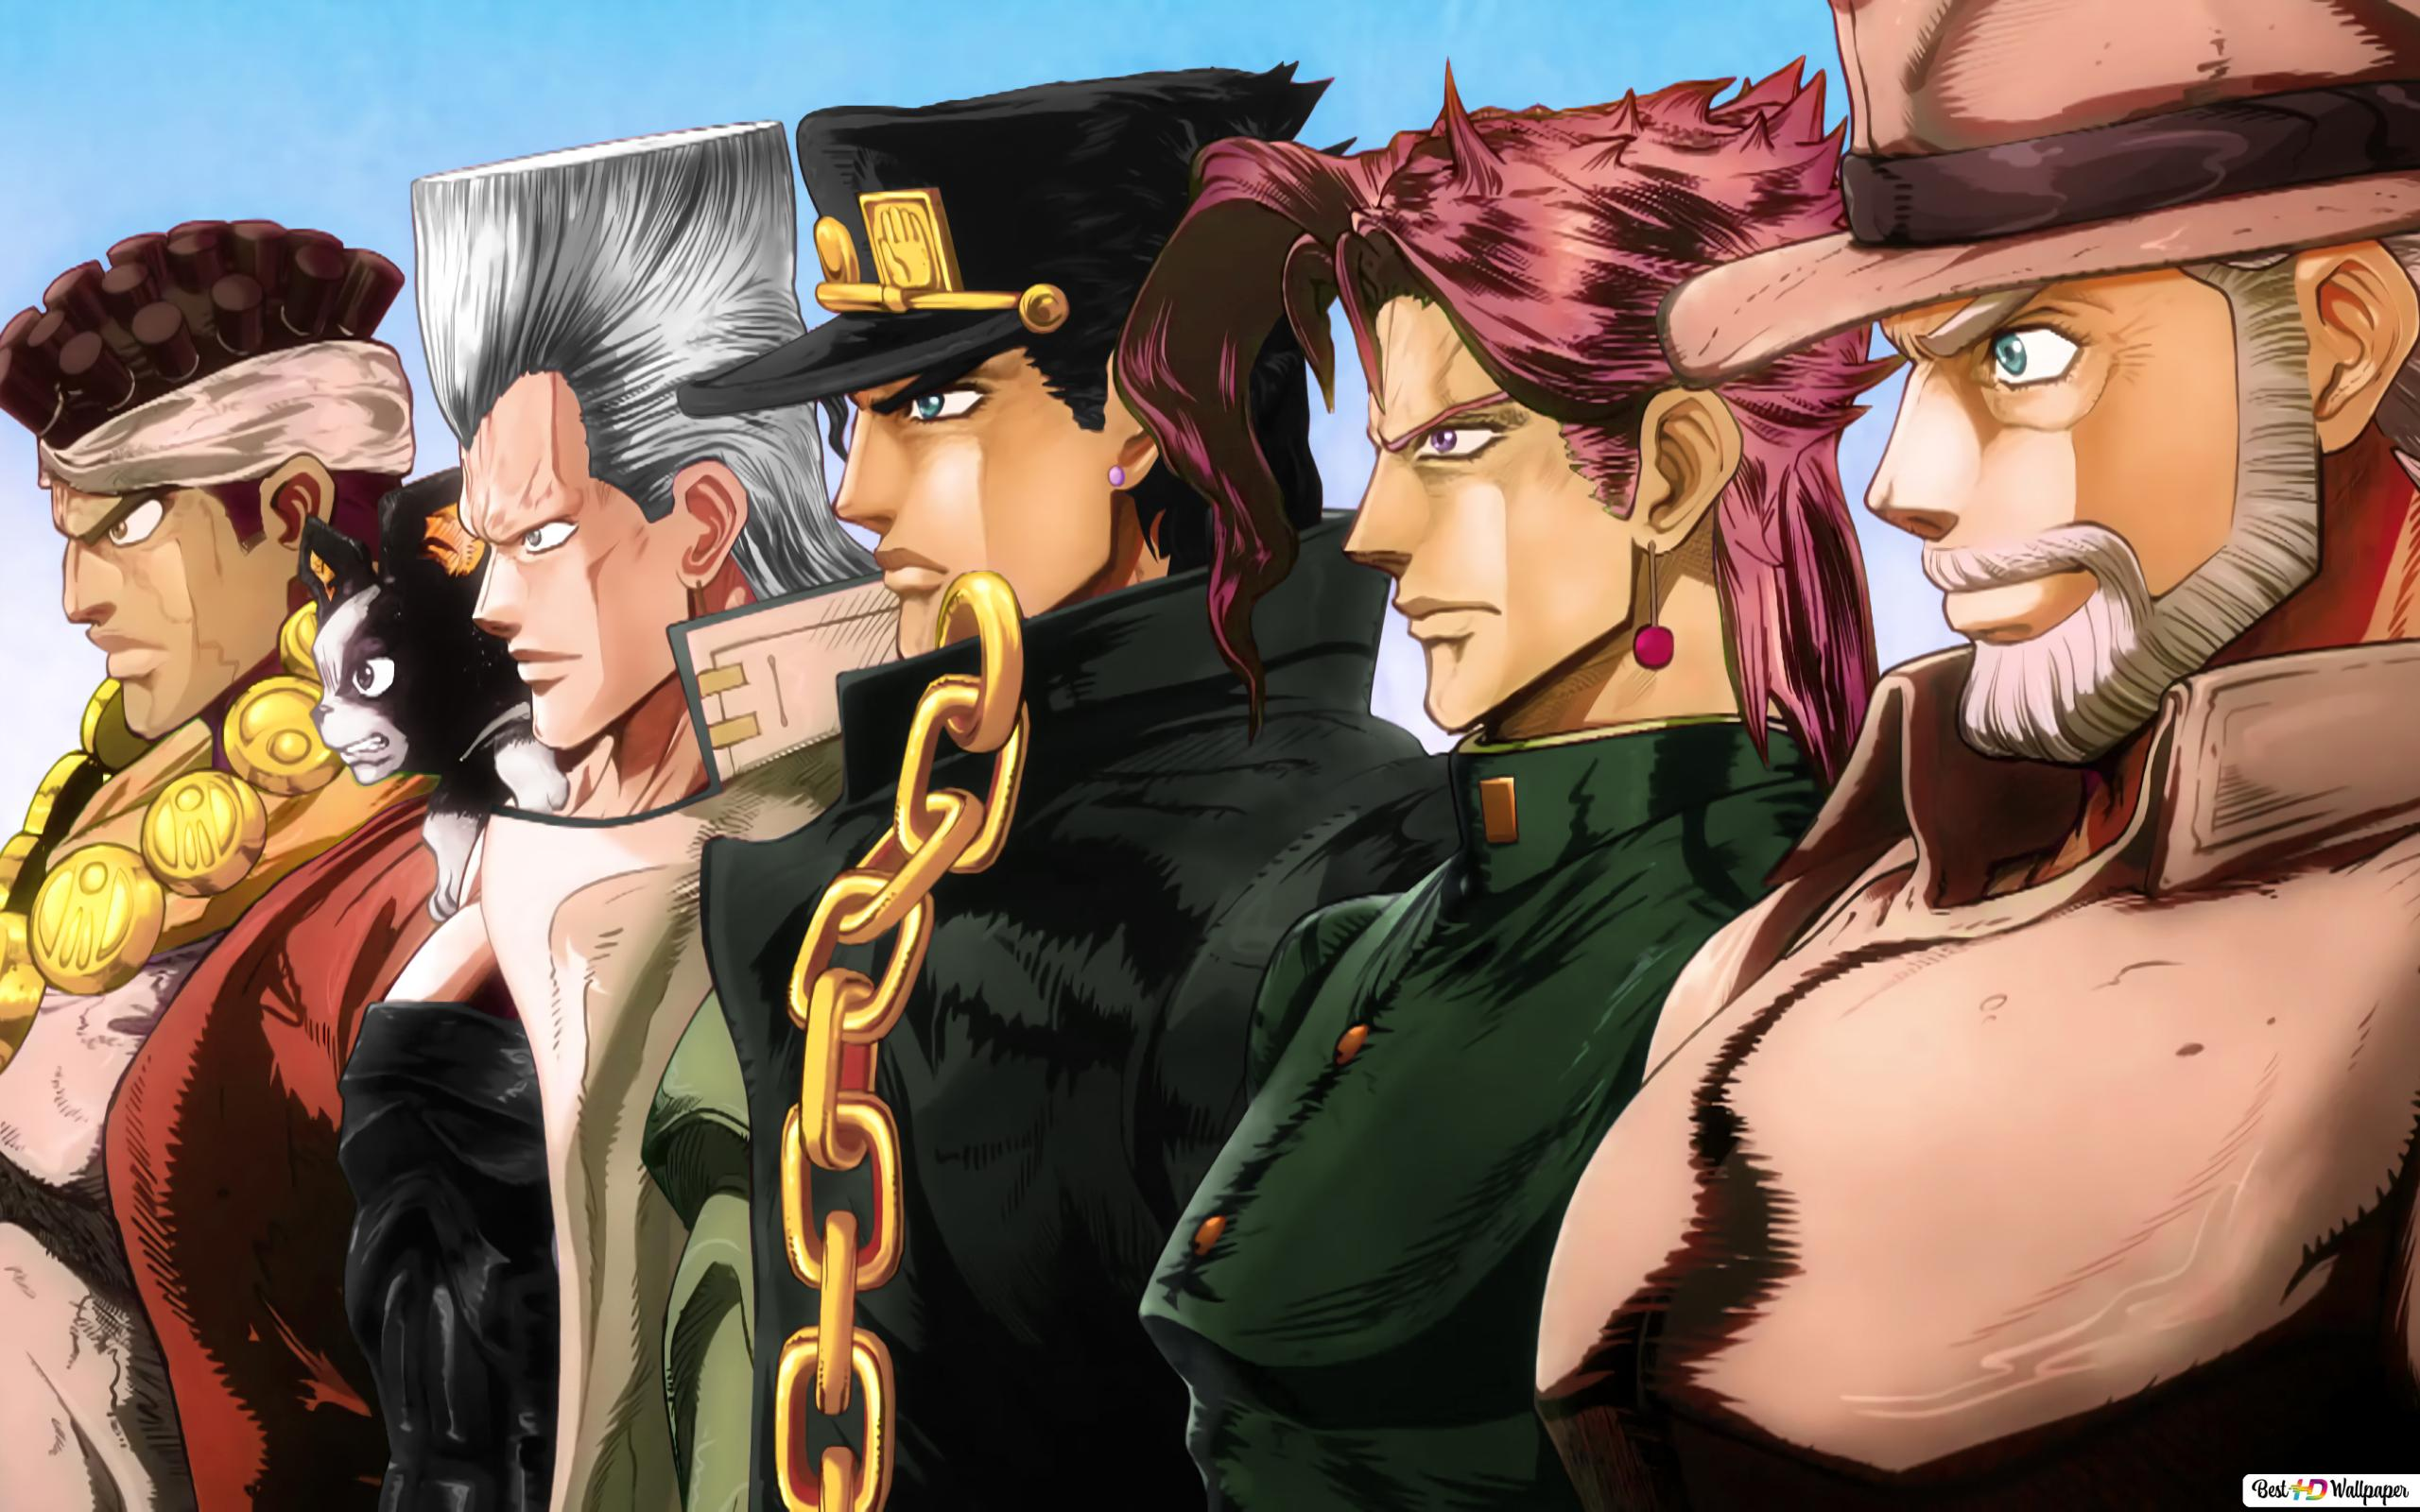 Theme Anime Anime Wallpaper Jojo